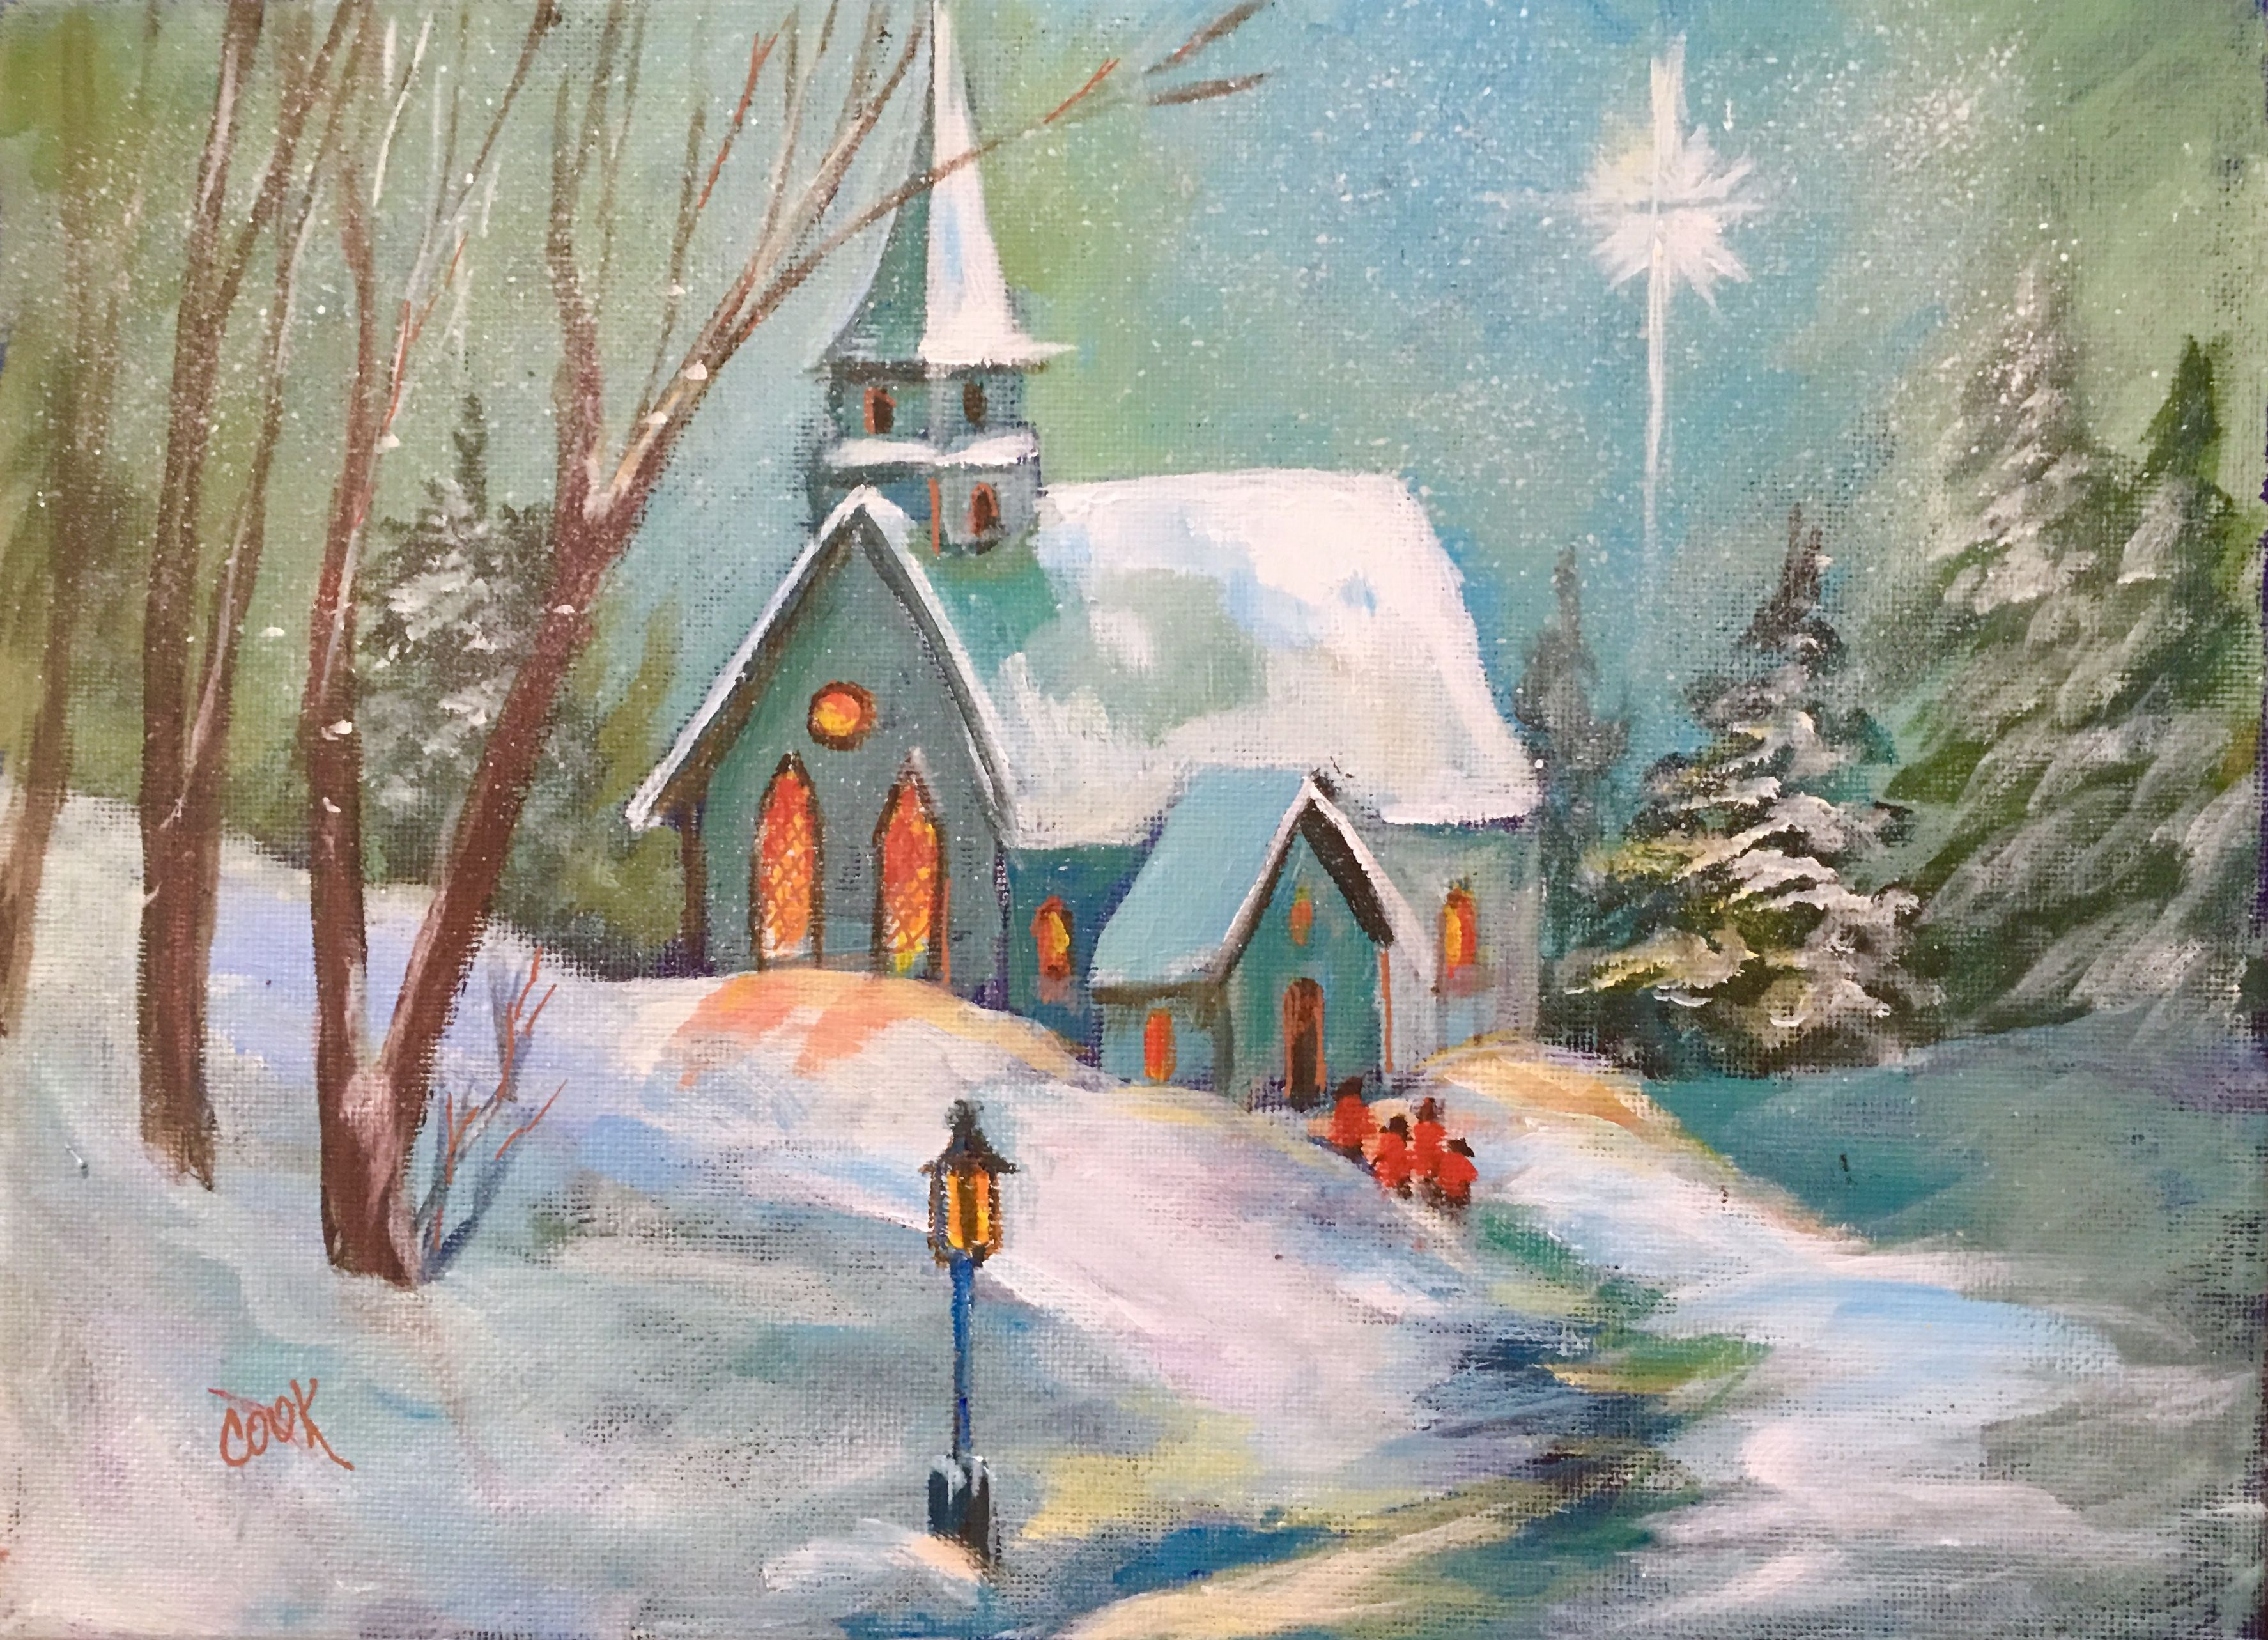 Snow Covered Church Painting Youtube Lesson Sno Painting